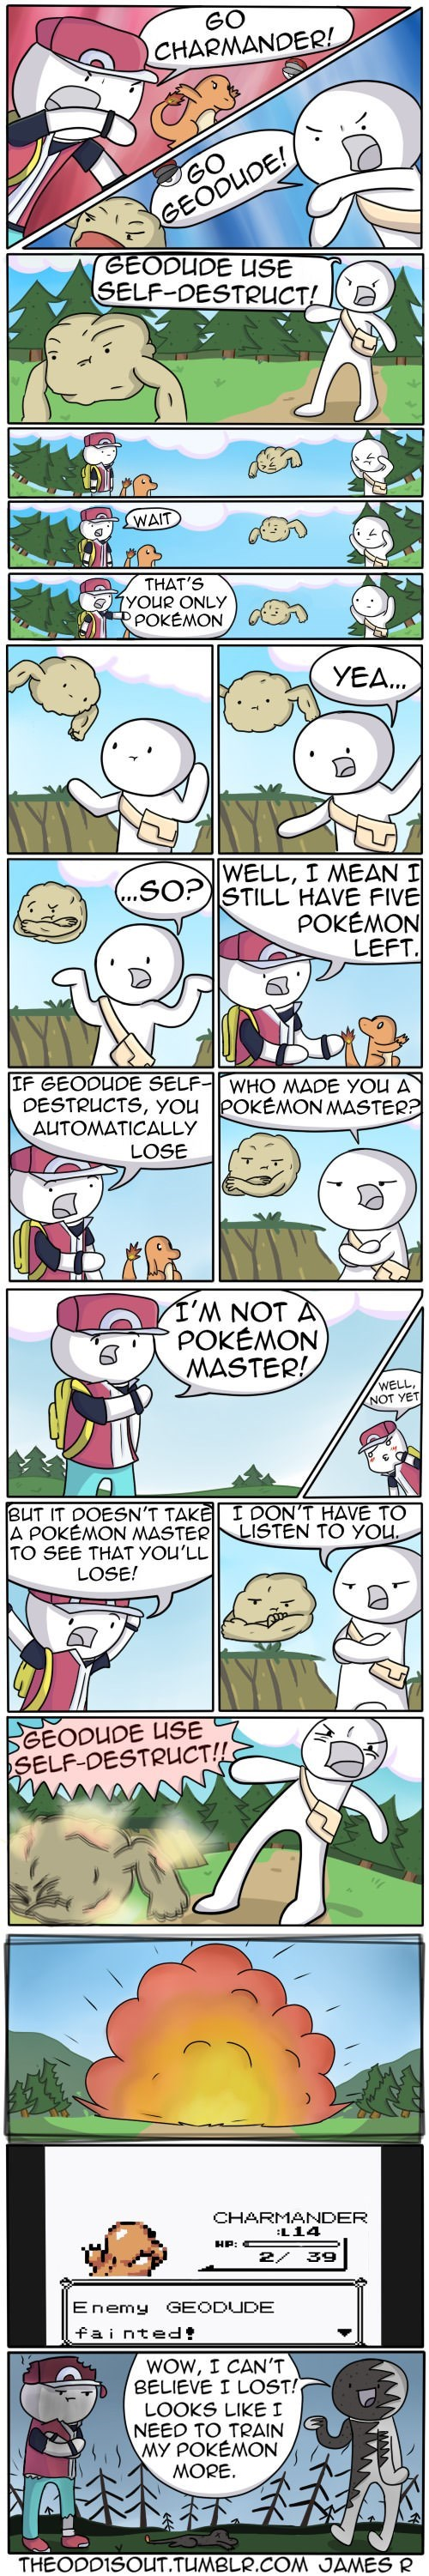 funny-truth-web-comics-pokemon-logic